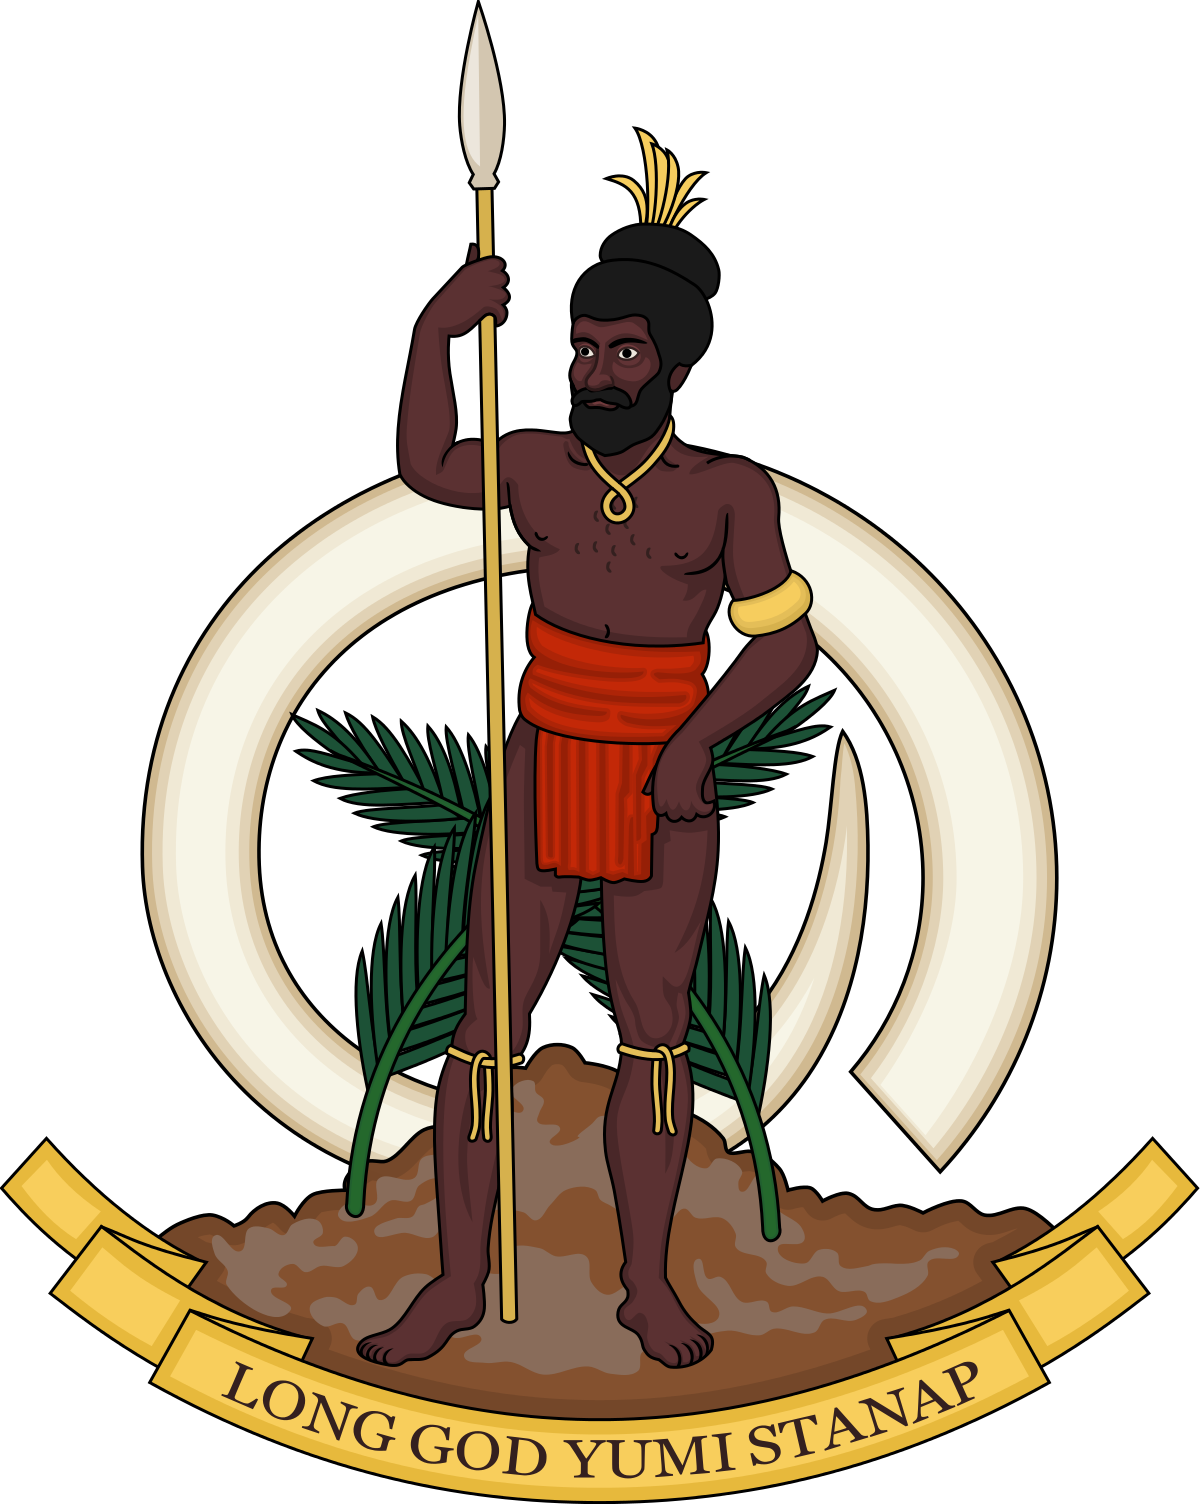 Congress clipart government person. Politics of vanuatu wikipedia